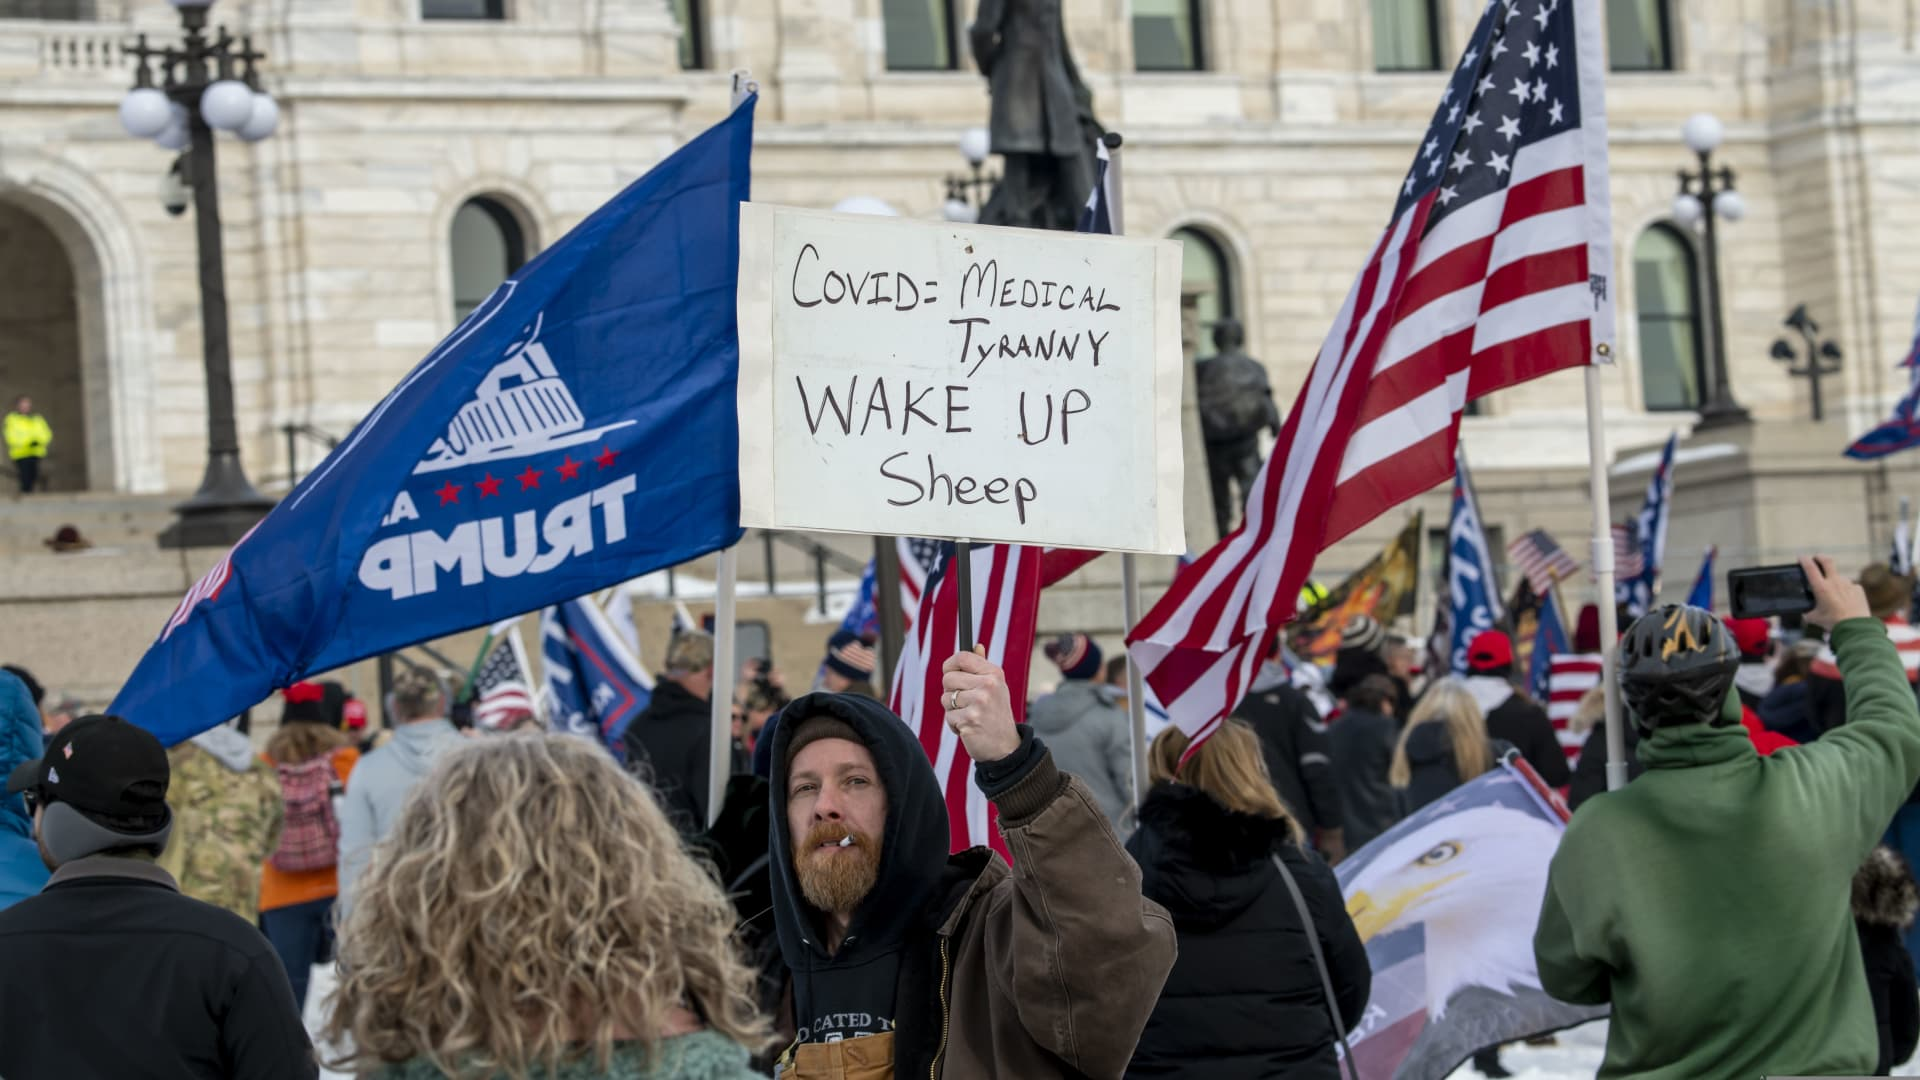 Donald Trump supporters gathered to protest against the certification of Joe Biden as the winner of the presidential election, State capitol, St. Paul, Minnesota.